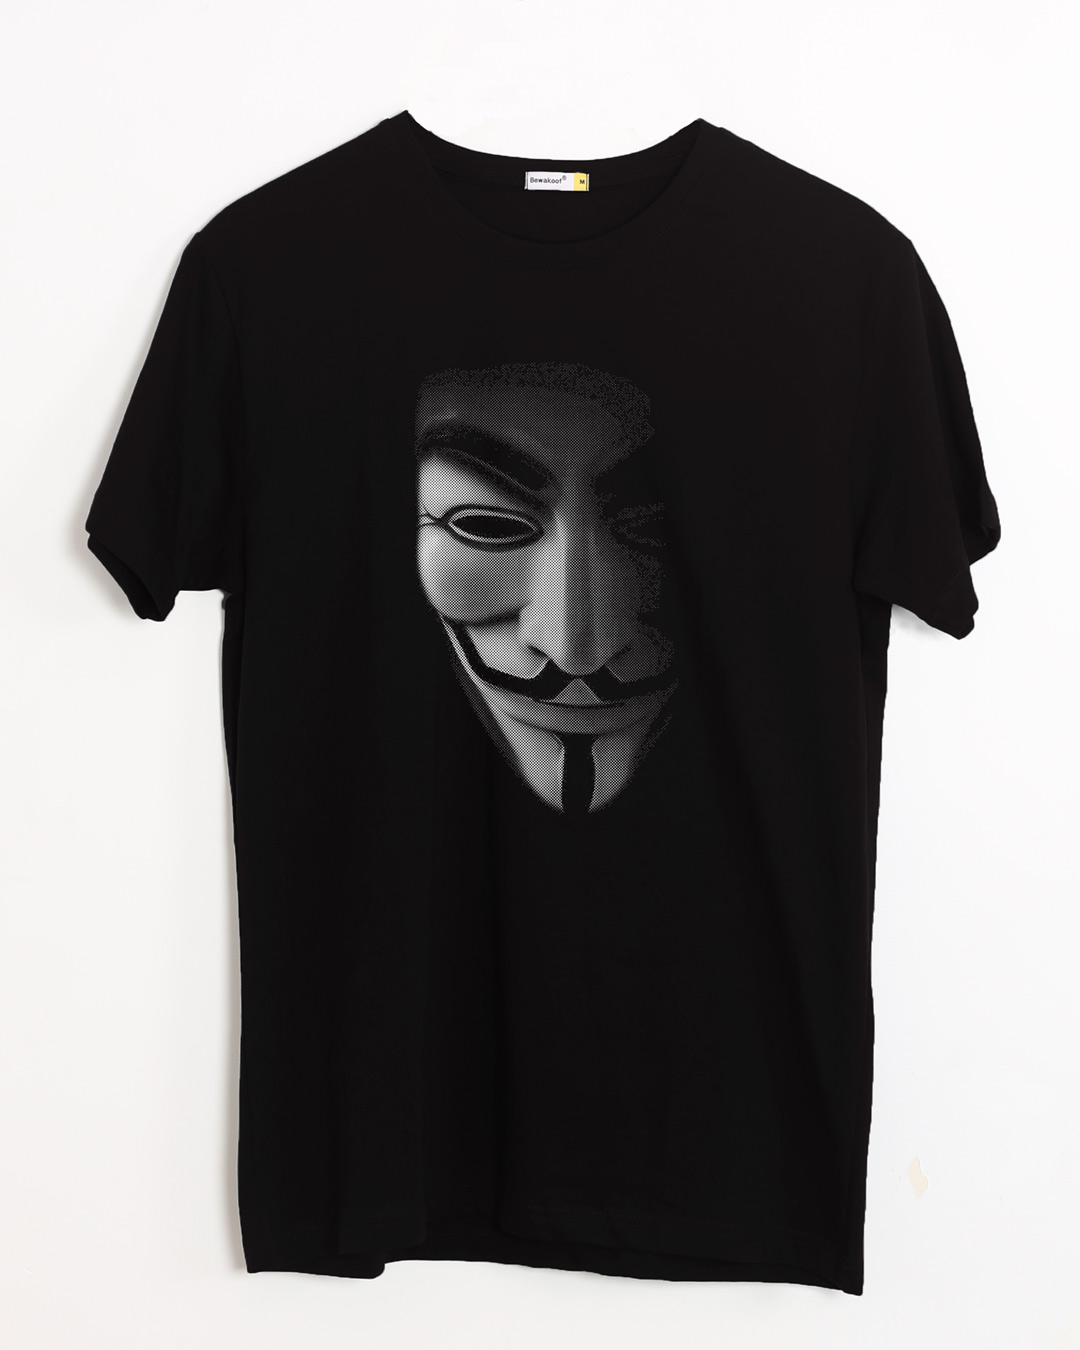 Buy Vendetta Shadows Printed Half Sleeve T-Shirt For Men Online India    Bewakoof.com 7172b7300b3